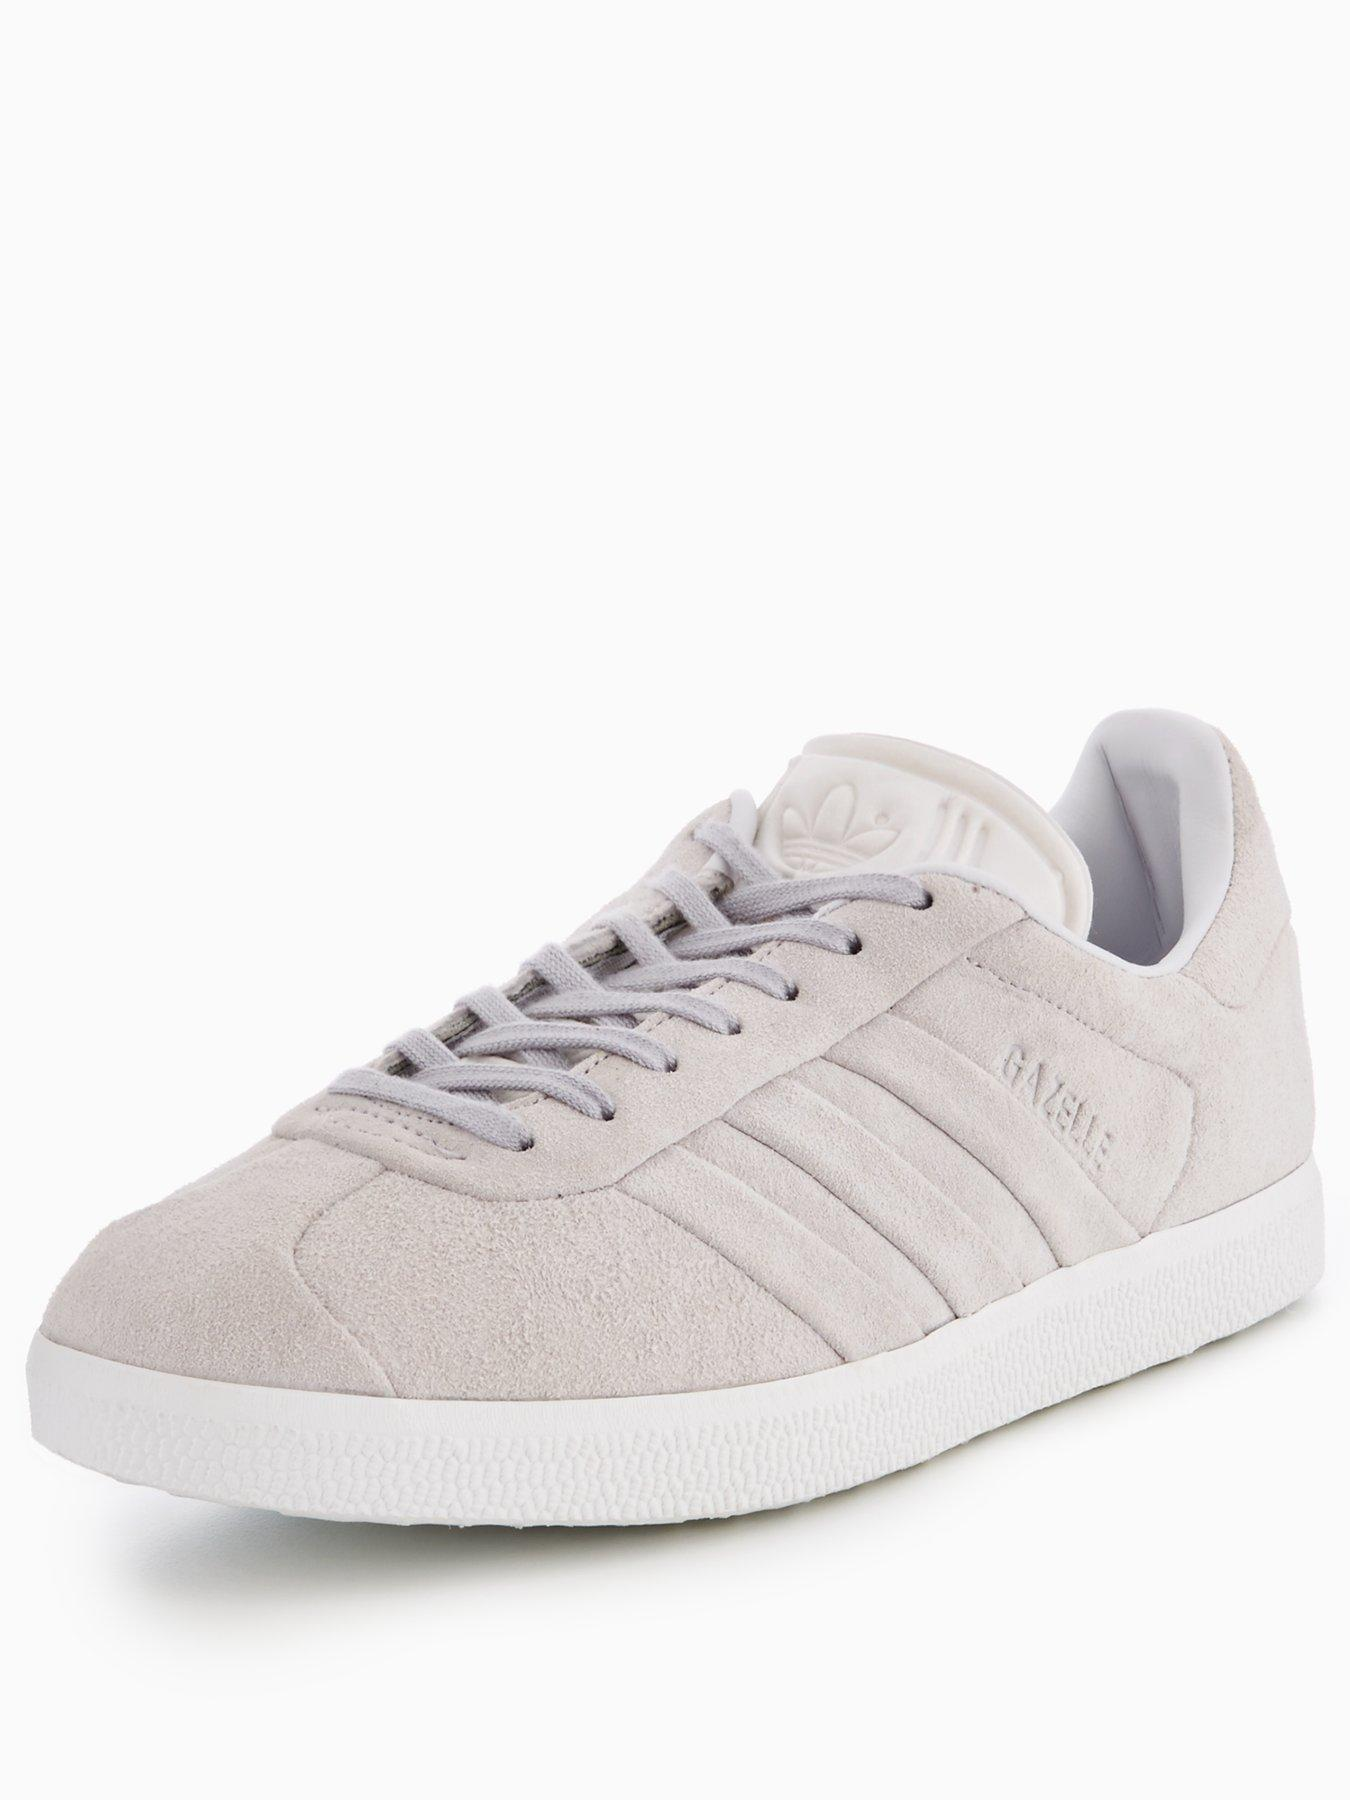 adidas Originals Gazelle Stitch & Turn - Grey